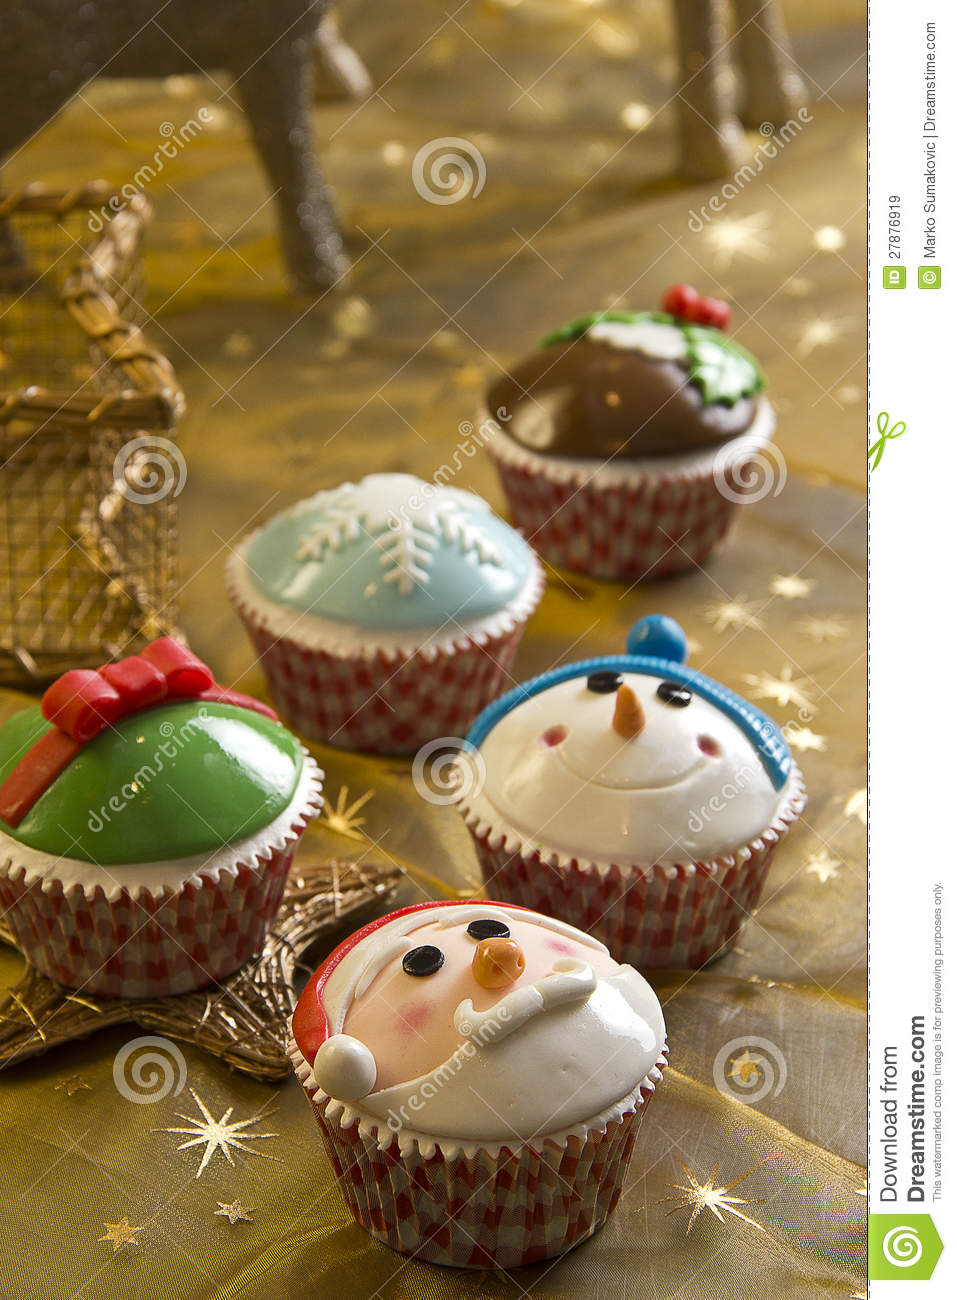 Download Christmas cupcakes stock image. Image of cupcakes, clause - 27876919